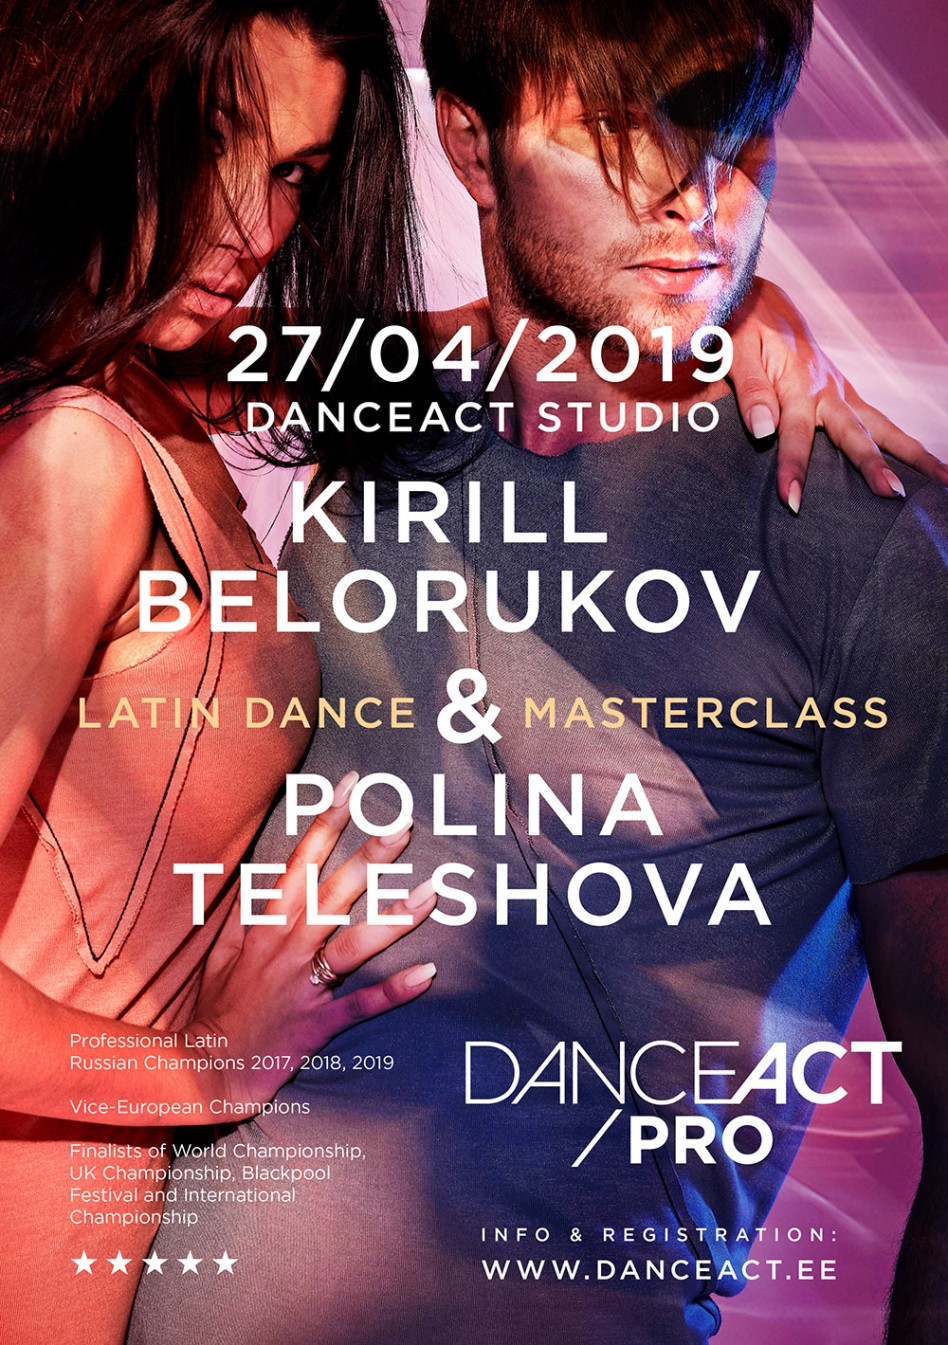 KIRILL BELORUKOV & POLINA TELESHOVA latin american dance sport lecture and classes | April 27h @ DanceAct